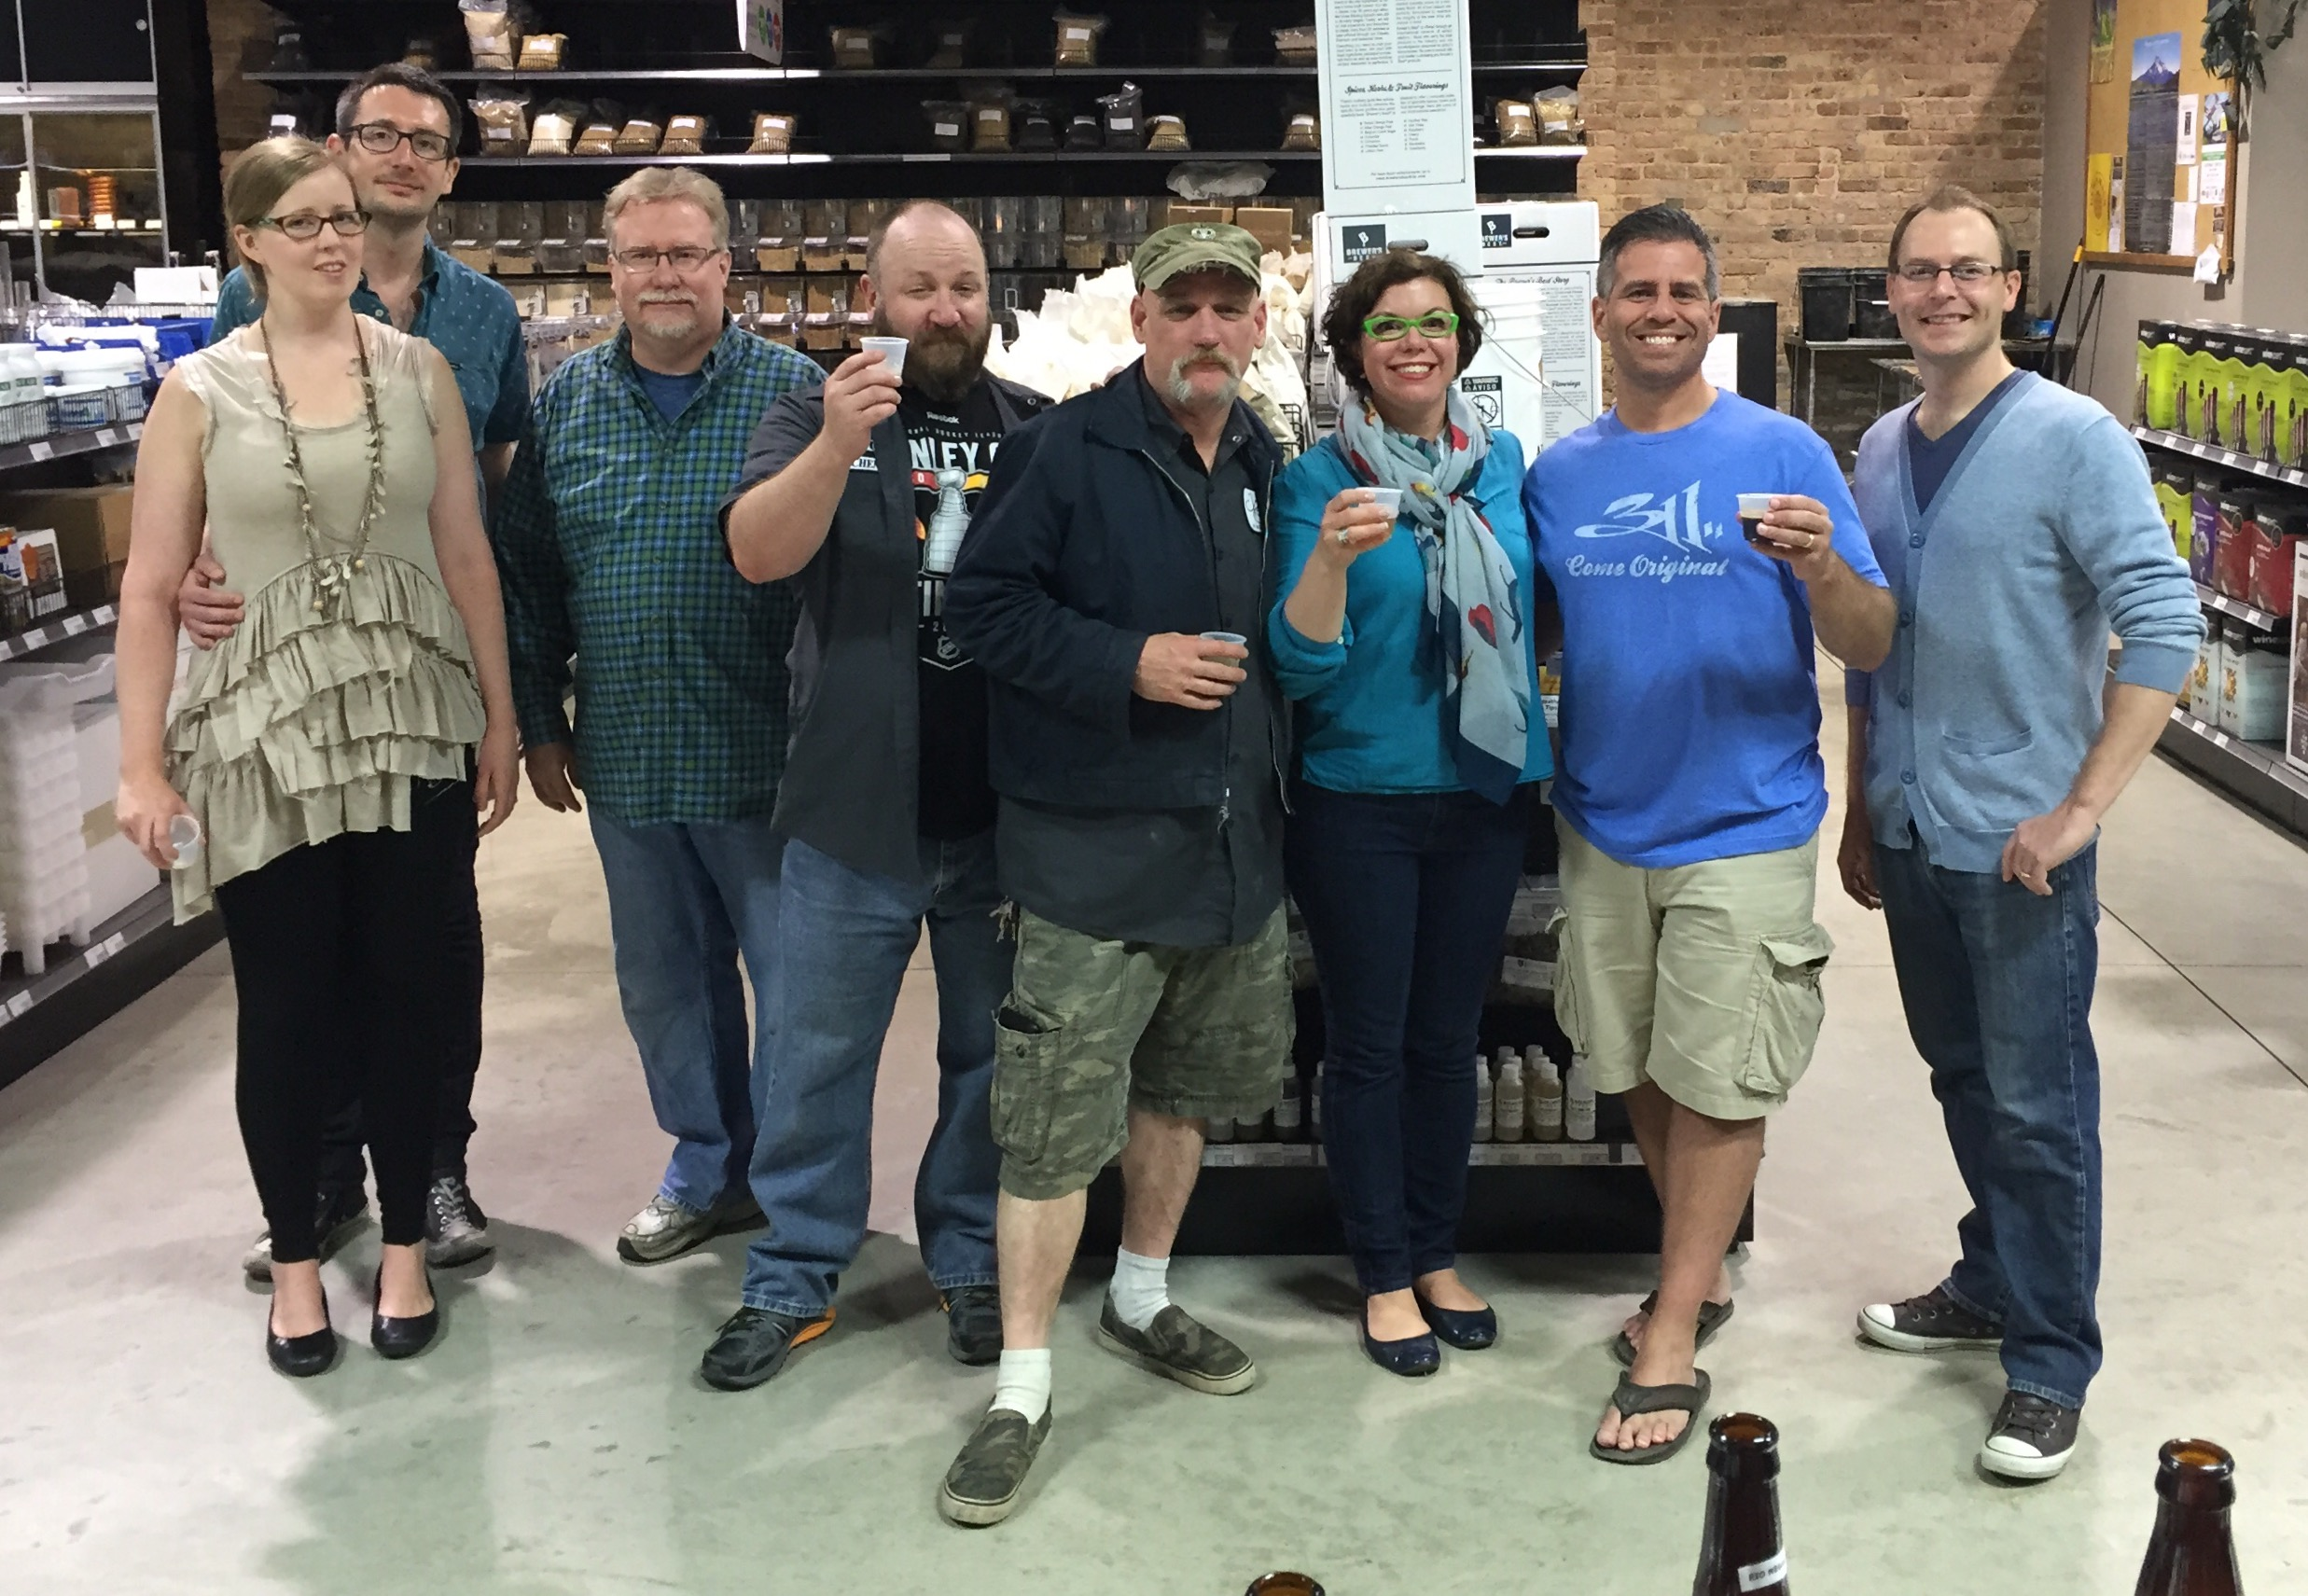 And Anecdotes From Dallas Resident Colin Stanley Hopes To Win Electric Car Contest Nanobrewery Blind Bat Brewery Tune Into This Episode Hear How Selling At The Greenmarket Has Allowed For Many Collaborations